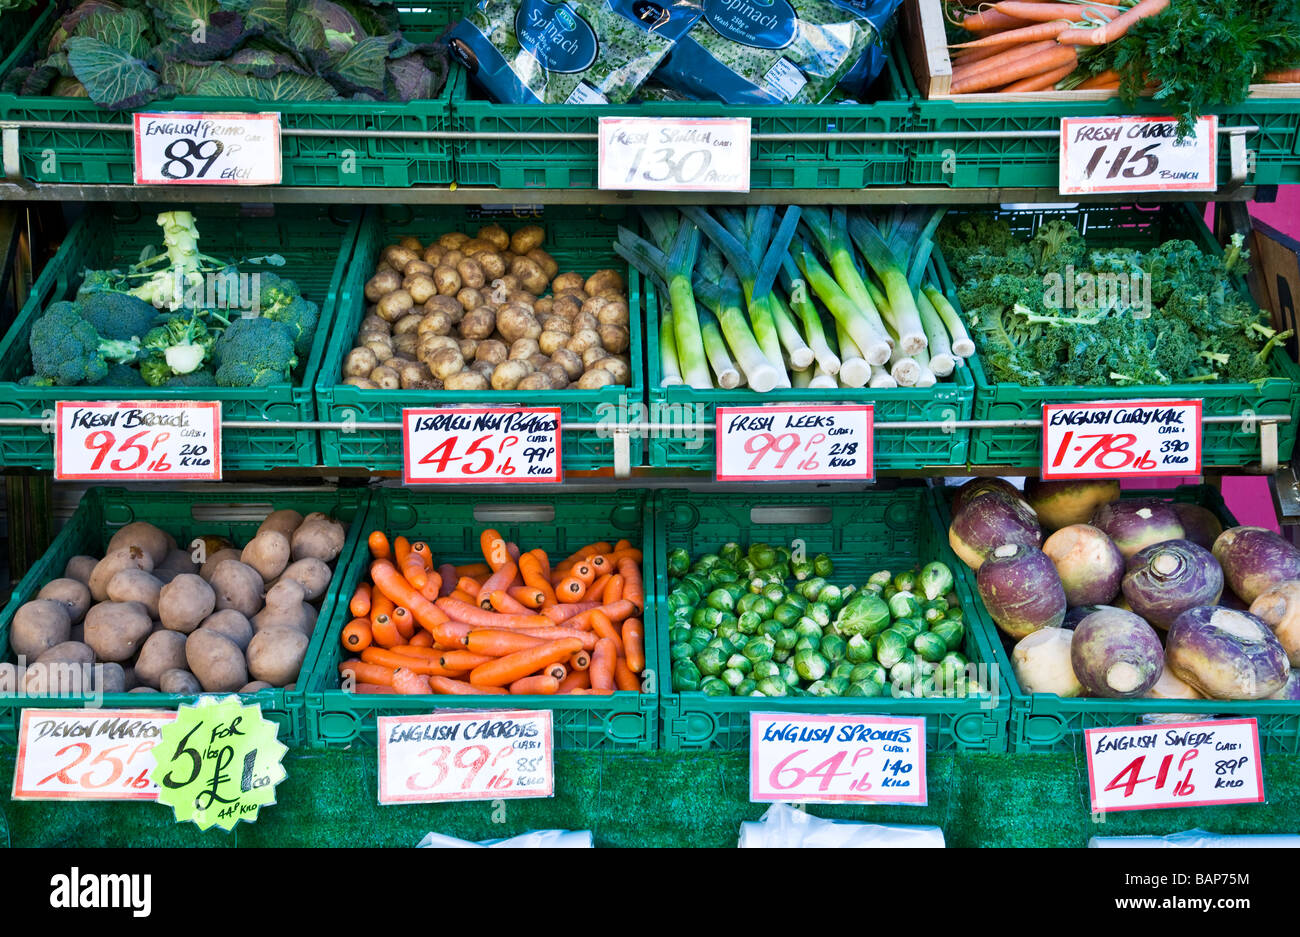 Mixed fresh vegetables in tiered display outside a greengrocer shop or store in England UK - Stock Image